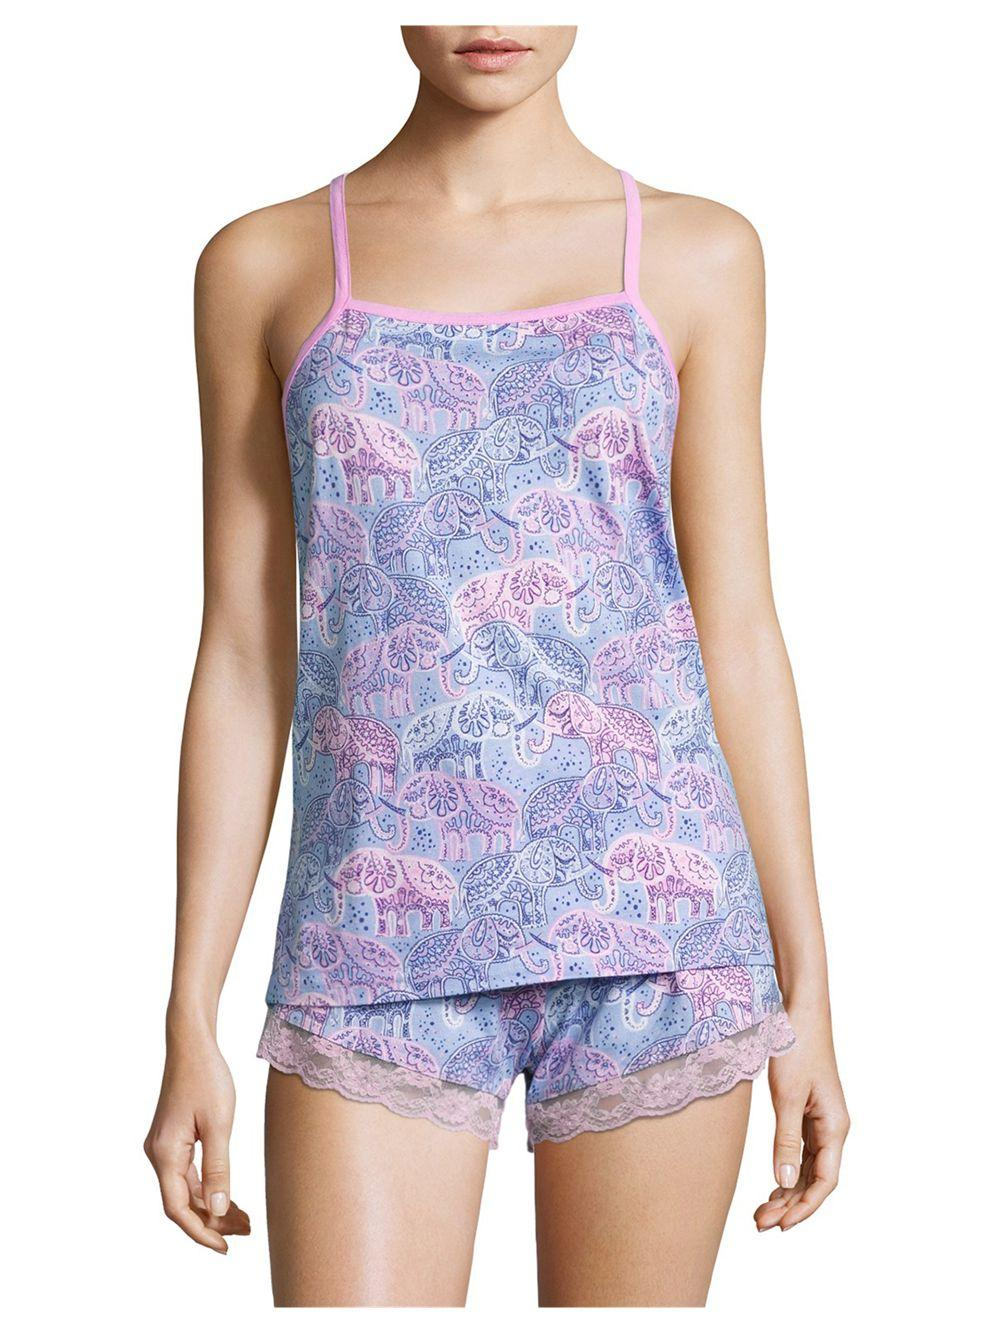 munki munki lace elephant jersey tank top and shorts in blue